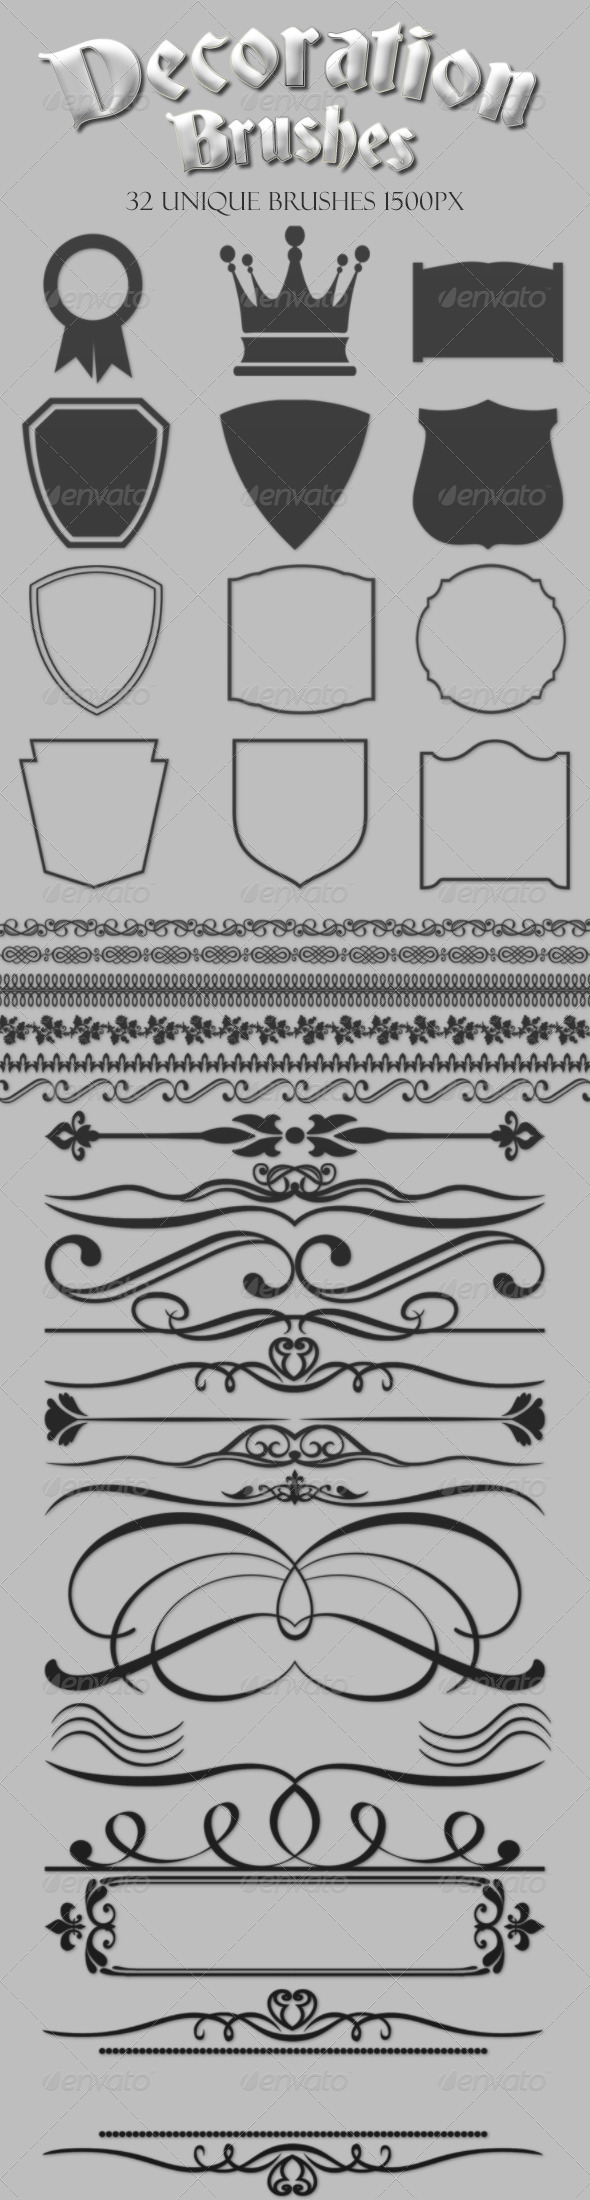 GraphicRiver Decoration Brushes 5996174